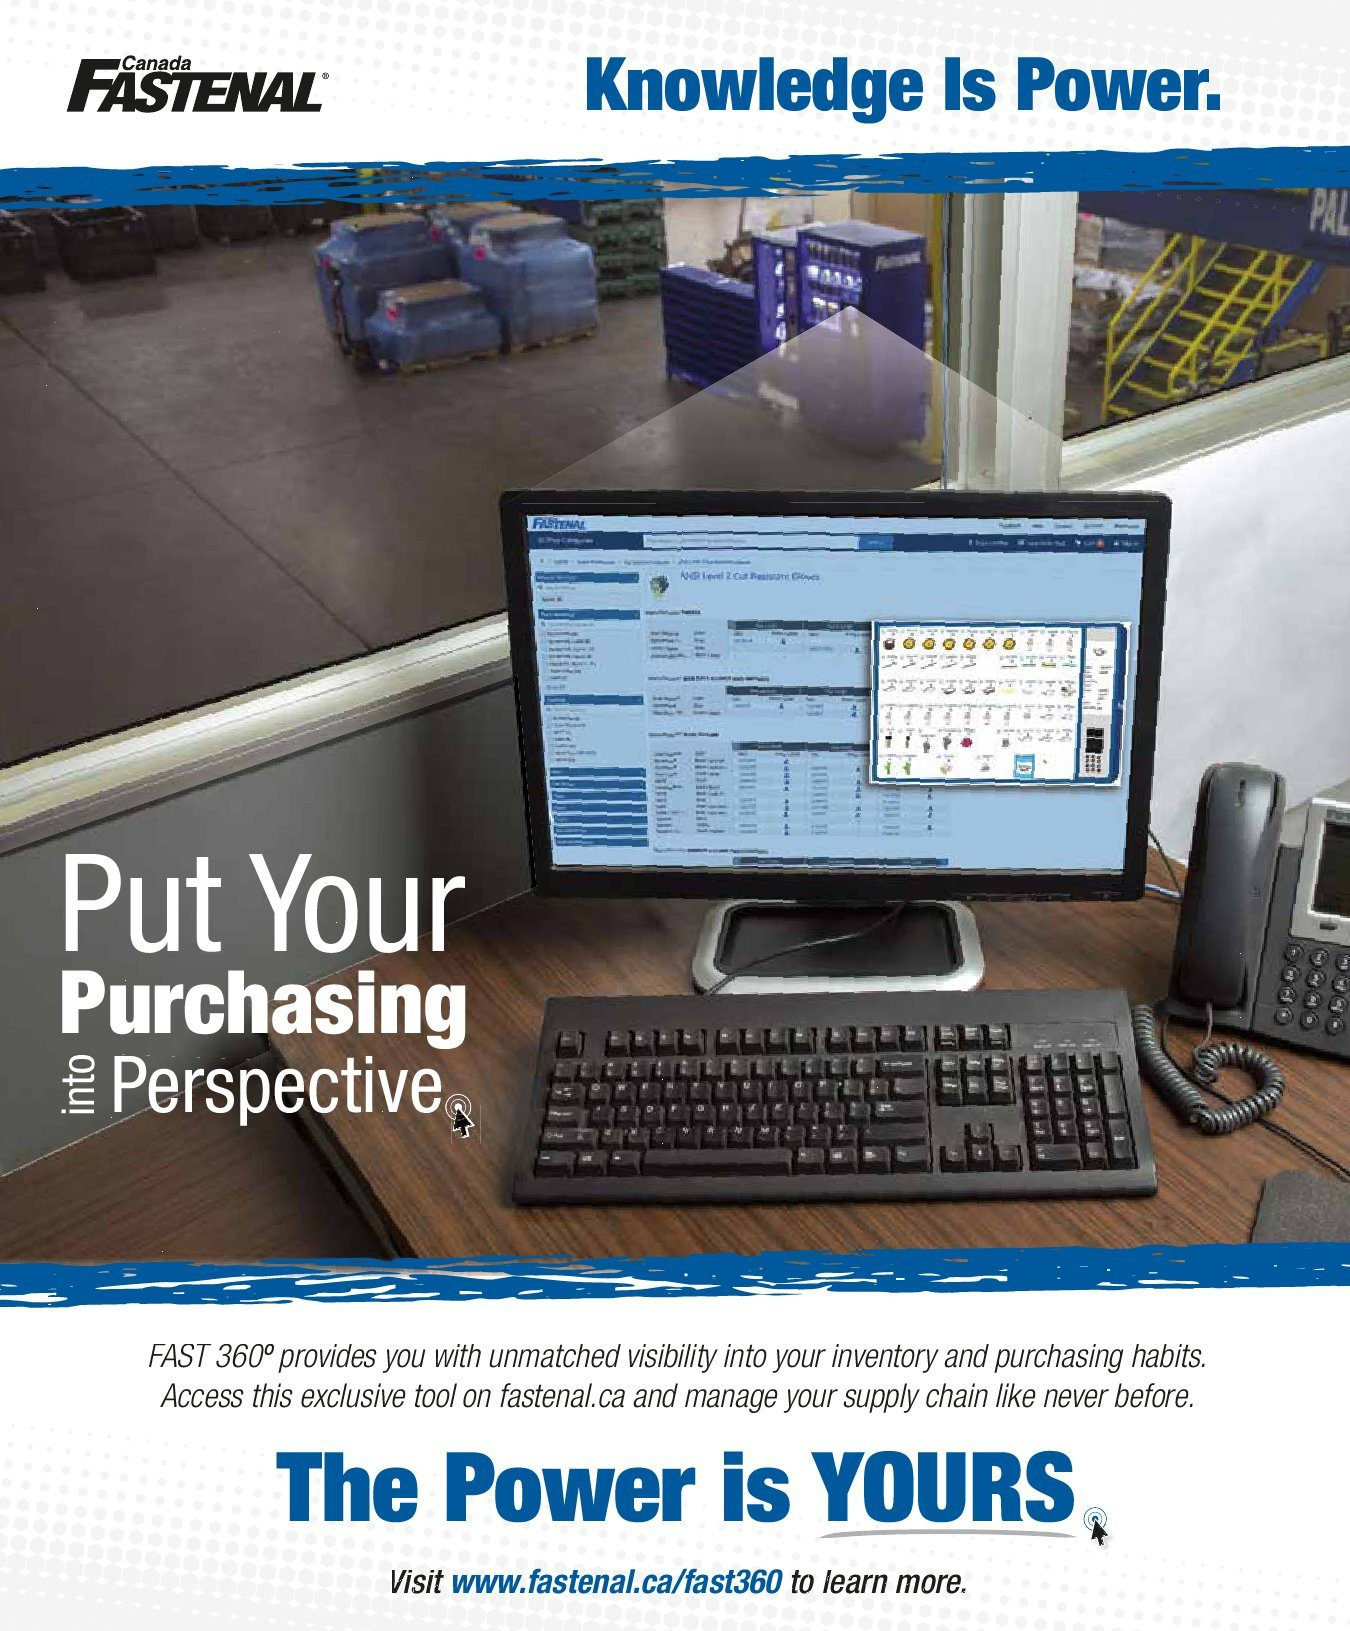 Fastenal Weekly Flyer October Product Specials Oct 1 31 Redflagdeals Com Eliminates or minimizes denting and marring. redflagdeals com